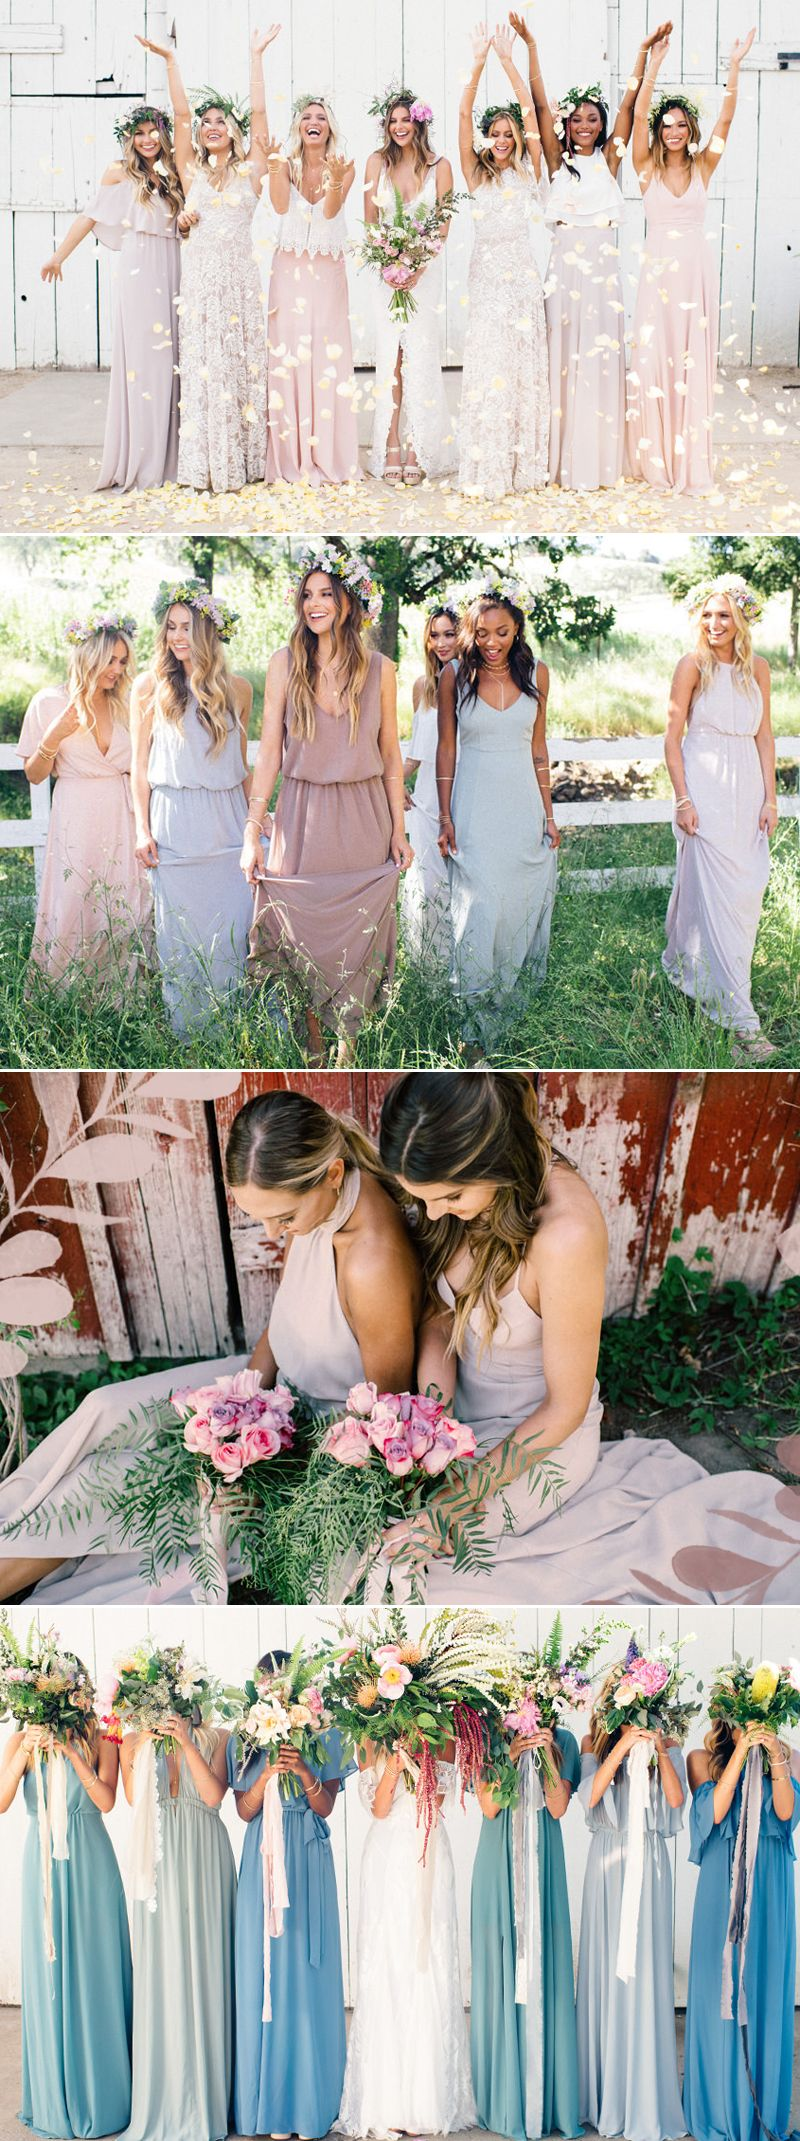 Chic trendy looks for any occasion the boho shop you need on your